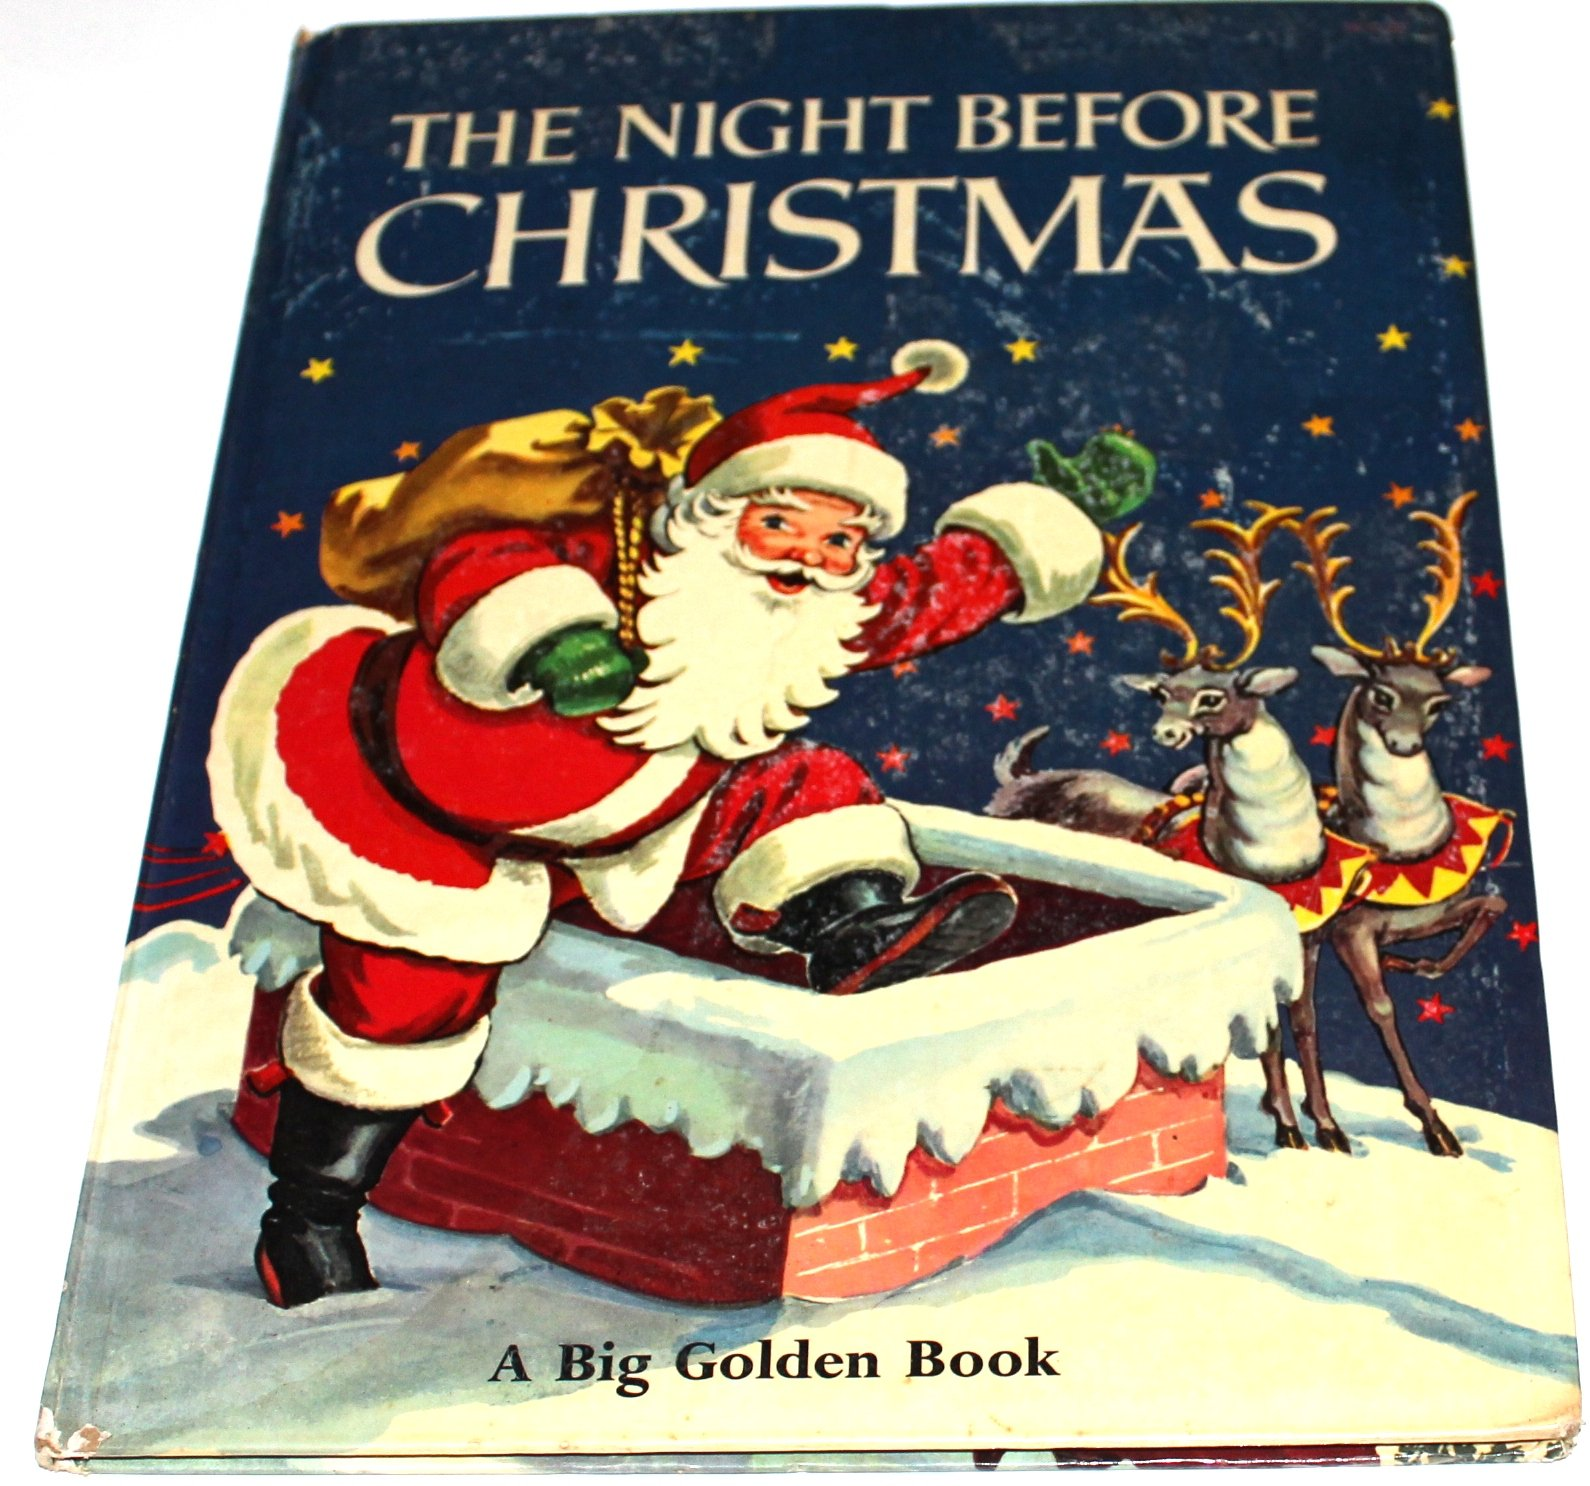 the night before christmas-stayreading